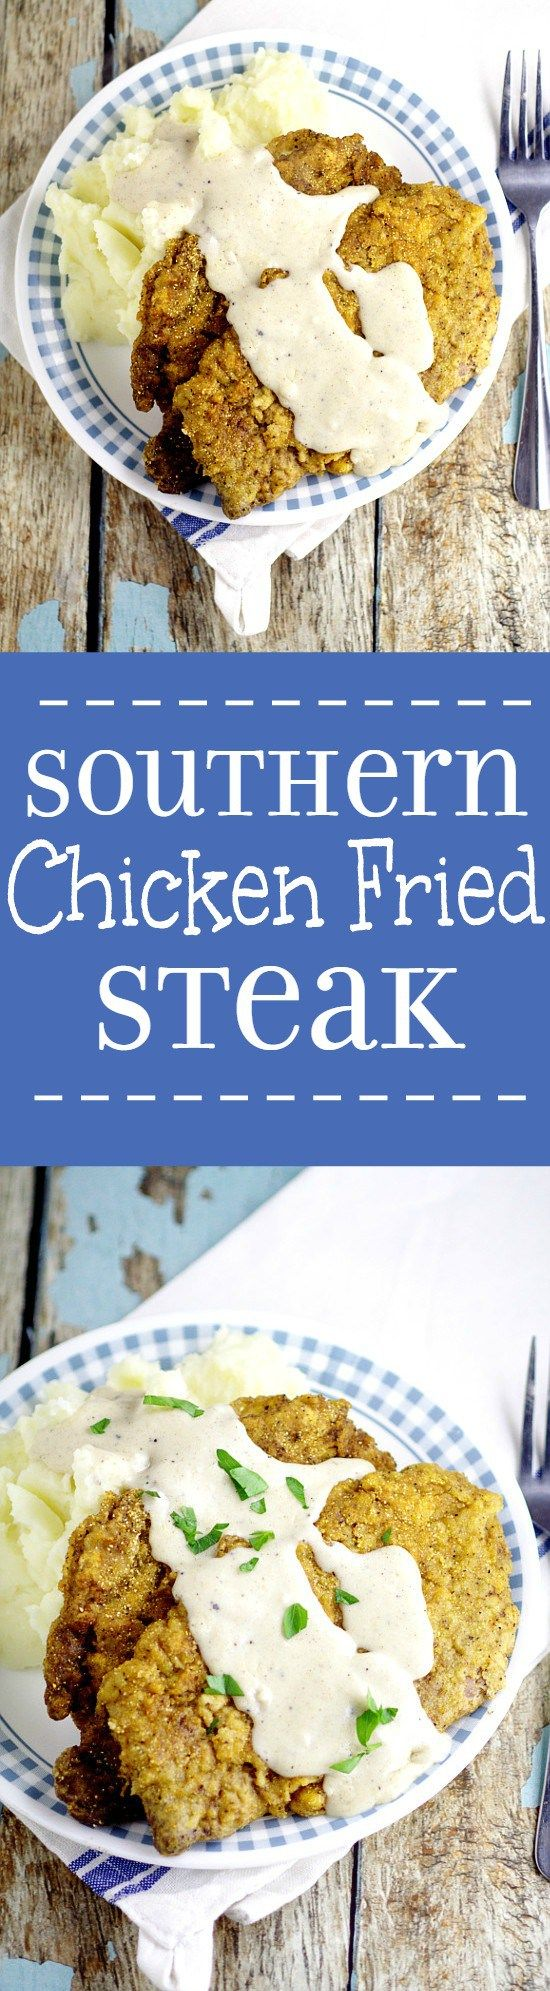 Classic Southern Chicken Fried Steak recipe with White Gravy is quick and easy to make and makes a perfect comfort food family dinner recipe.